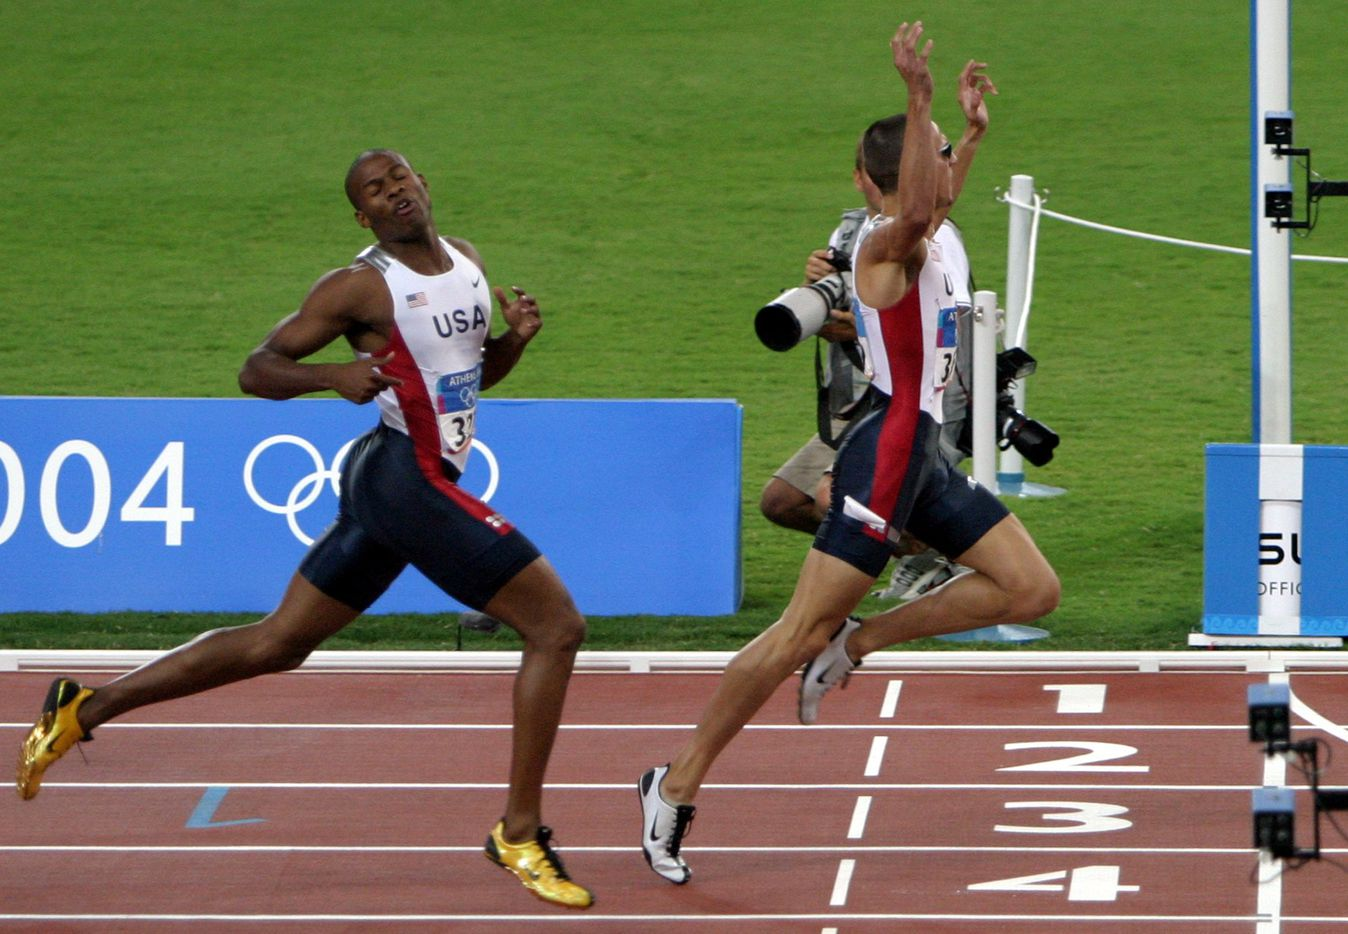 2004 Summer Olympic Games: Jeremy Wariner of the U.S. (R) beats teammate Otis Harris to the finish line to win the men's 400m final during track and field competition at the 2004 Summer Olympic Games in Athens, Greece, on Aug. 23, 2004.